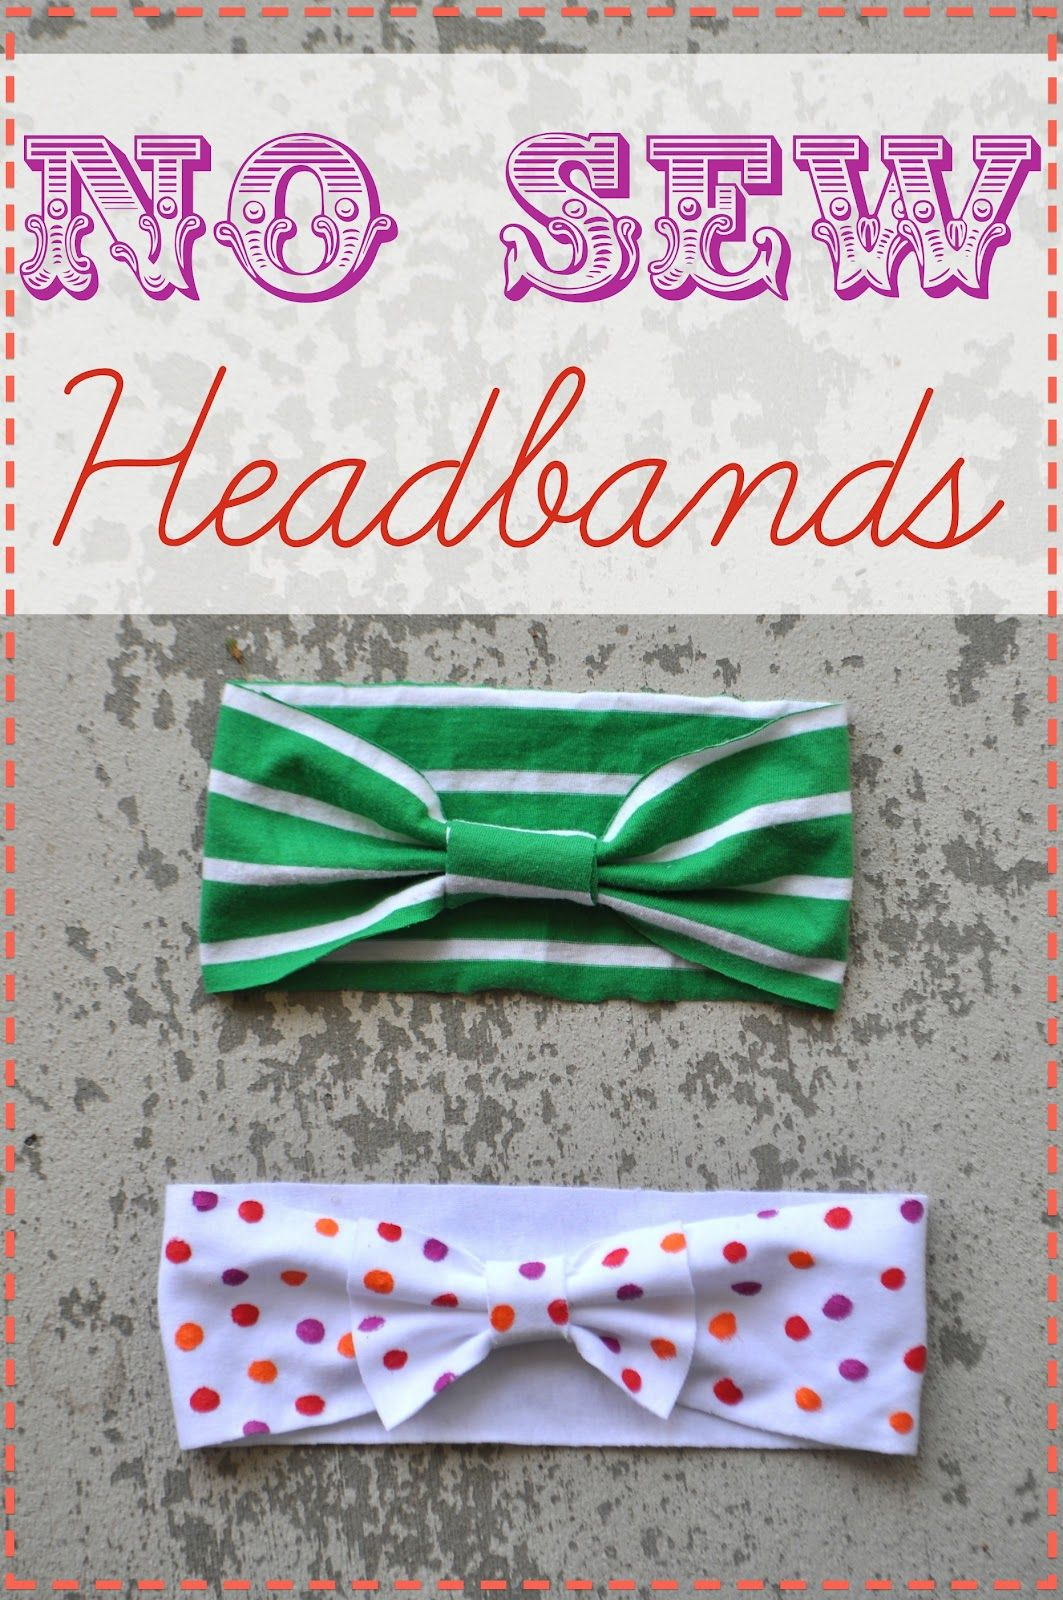 no-sew headbands made out of old t-shirts... genius!  course you could sew it if you have access to a sewing machine  (rs super saturday?)